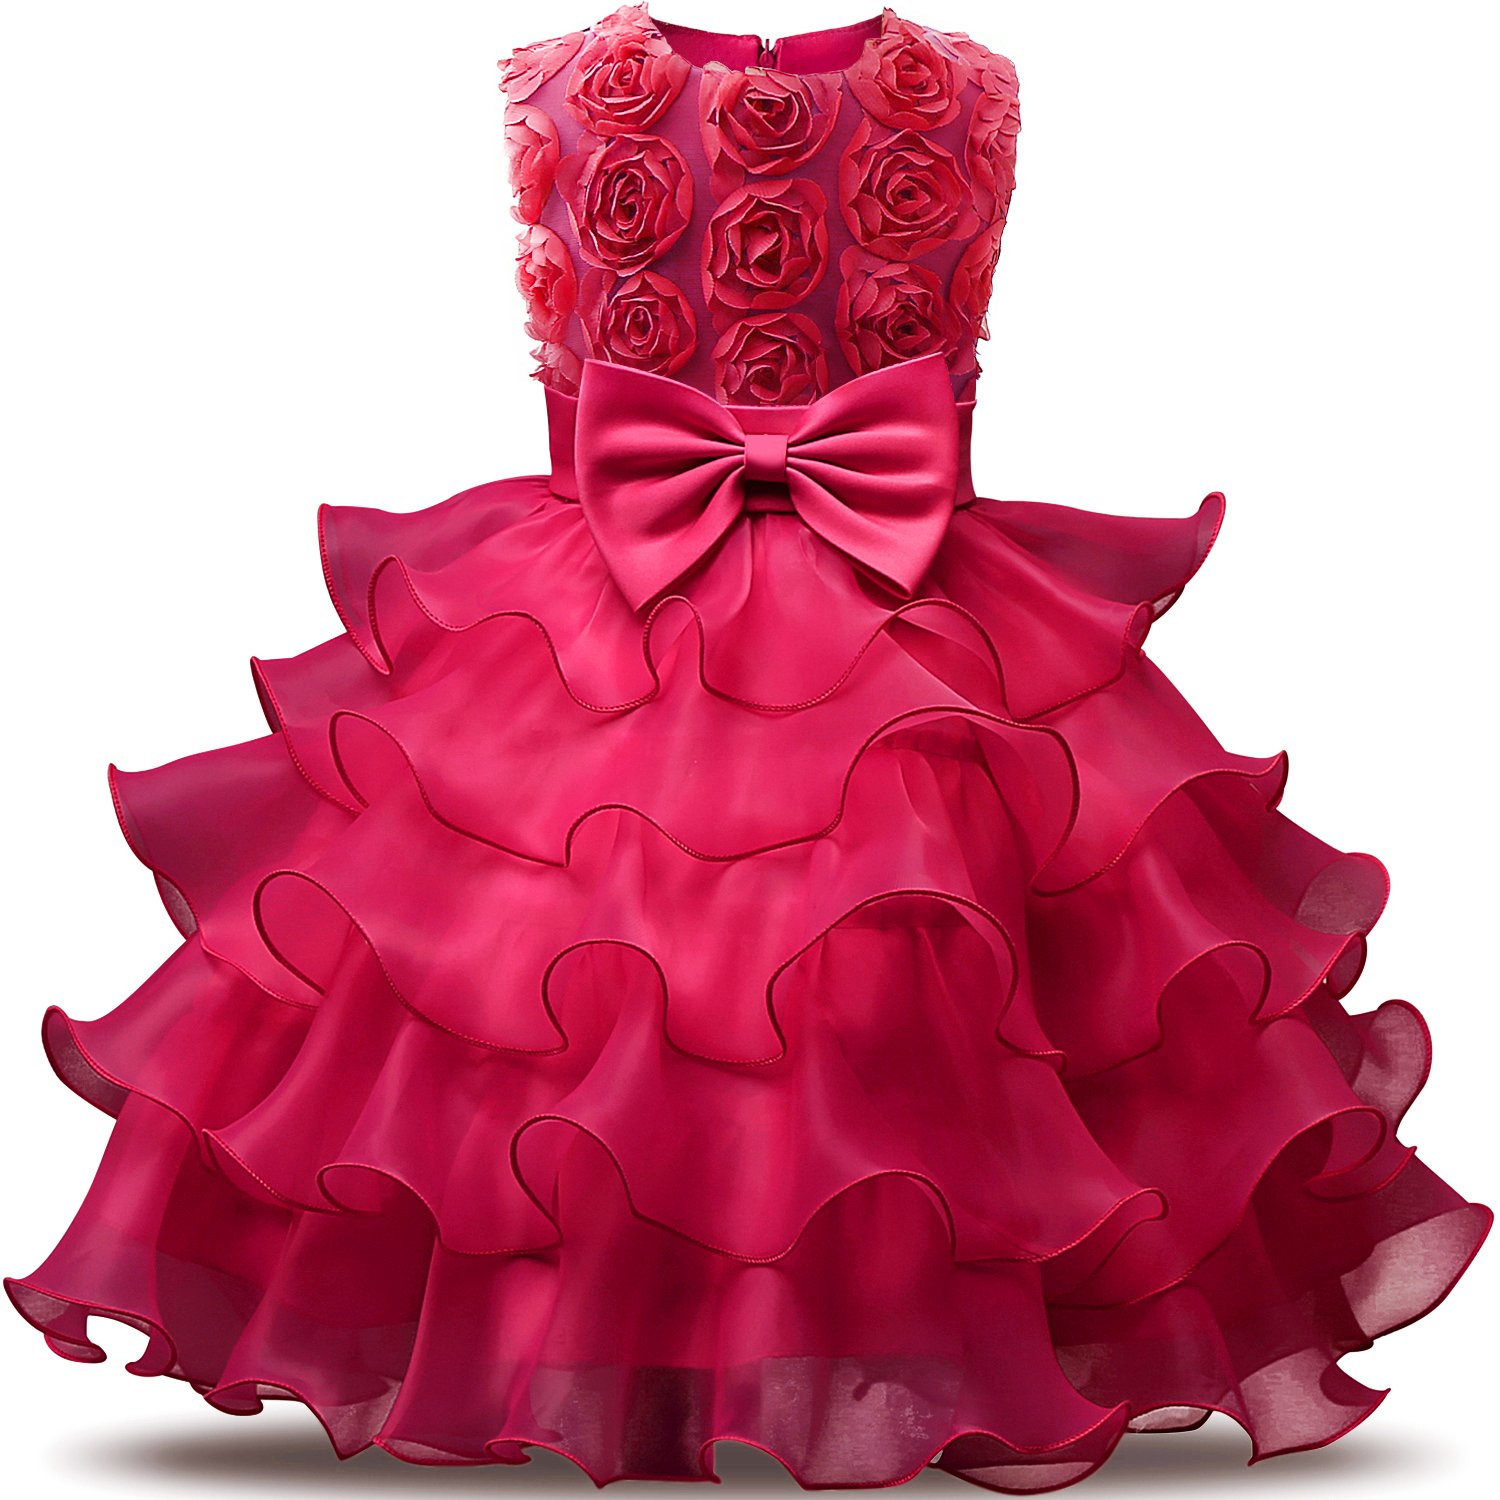 NNJXD Girl Dress Kids Ruffles Lace Party Wedding Dresses Size (120) 4-5 Years Flower Rose